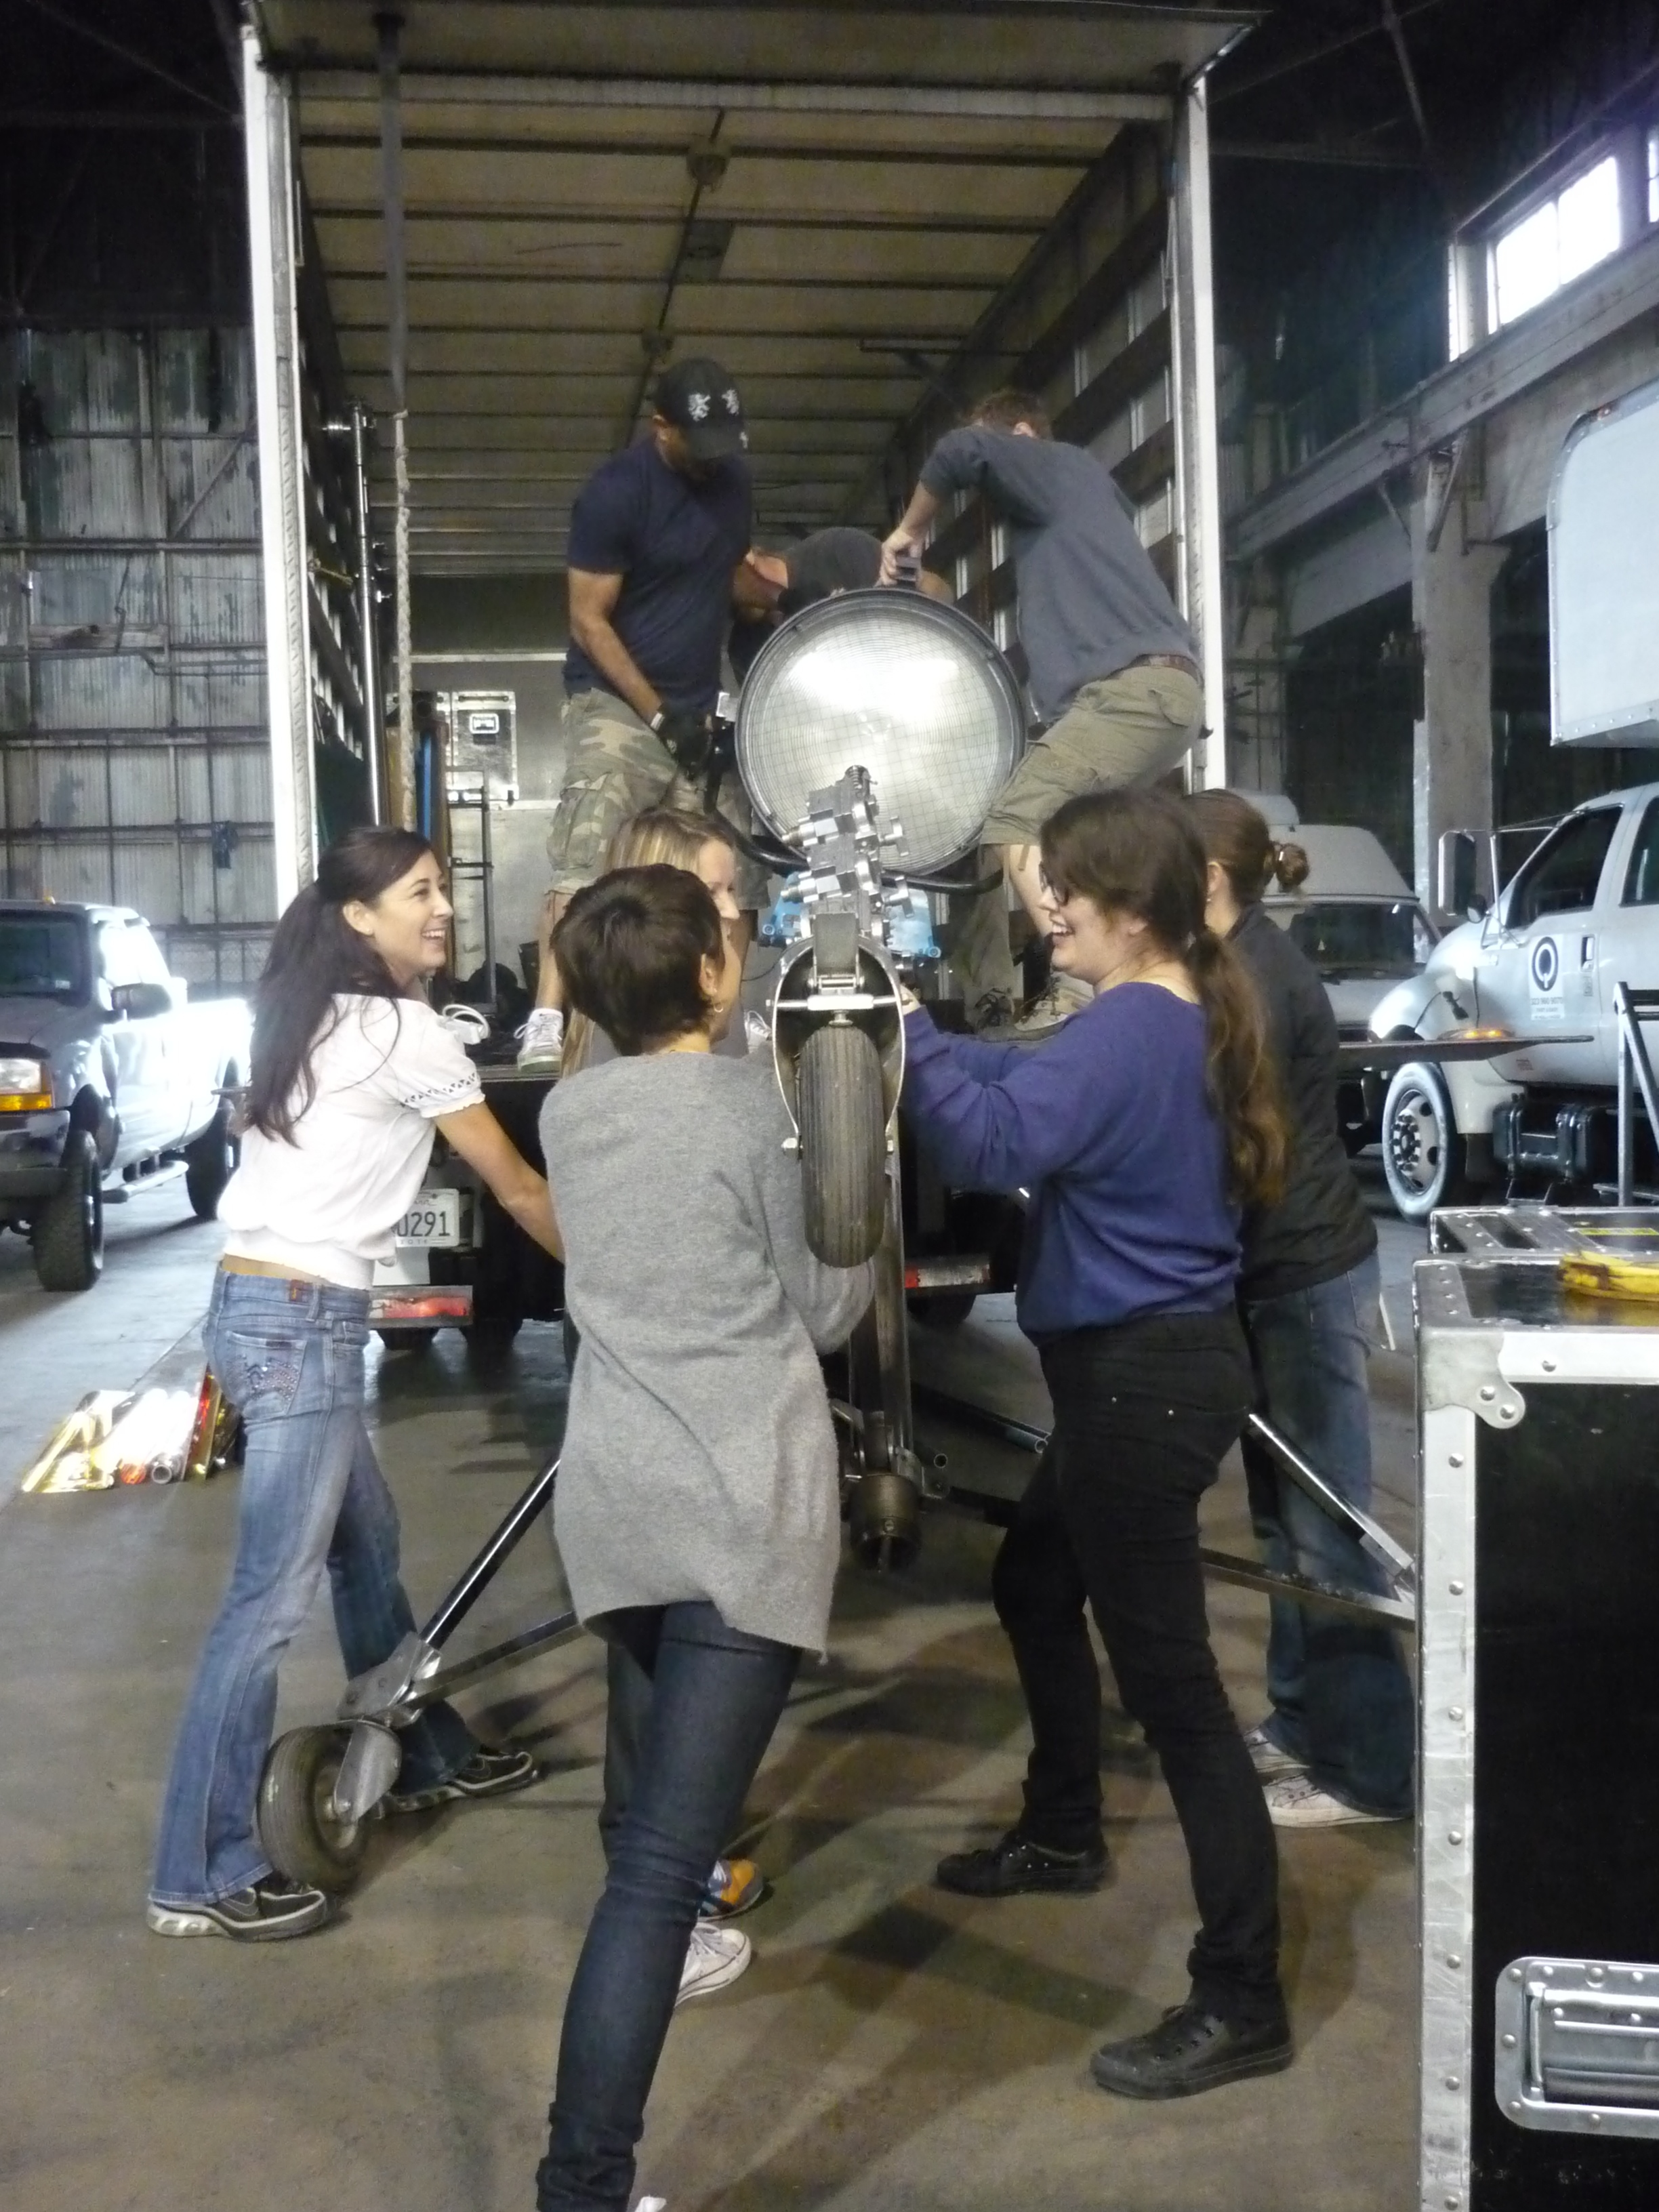 It takes a village to get the HMI in the truck.